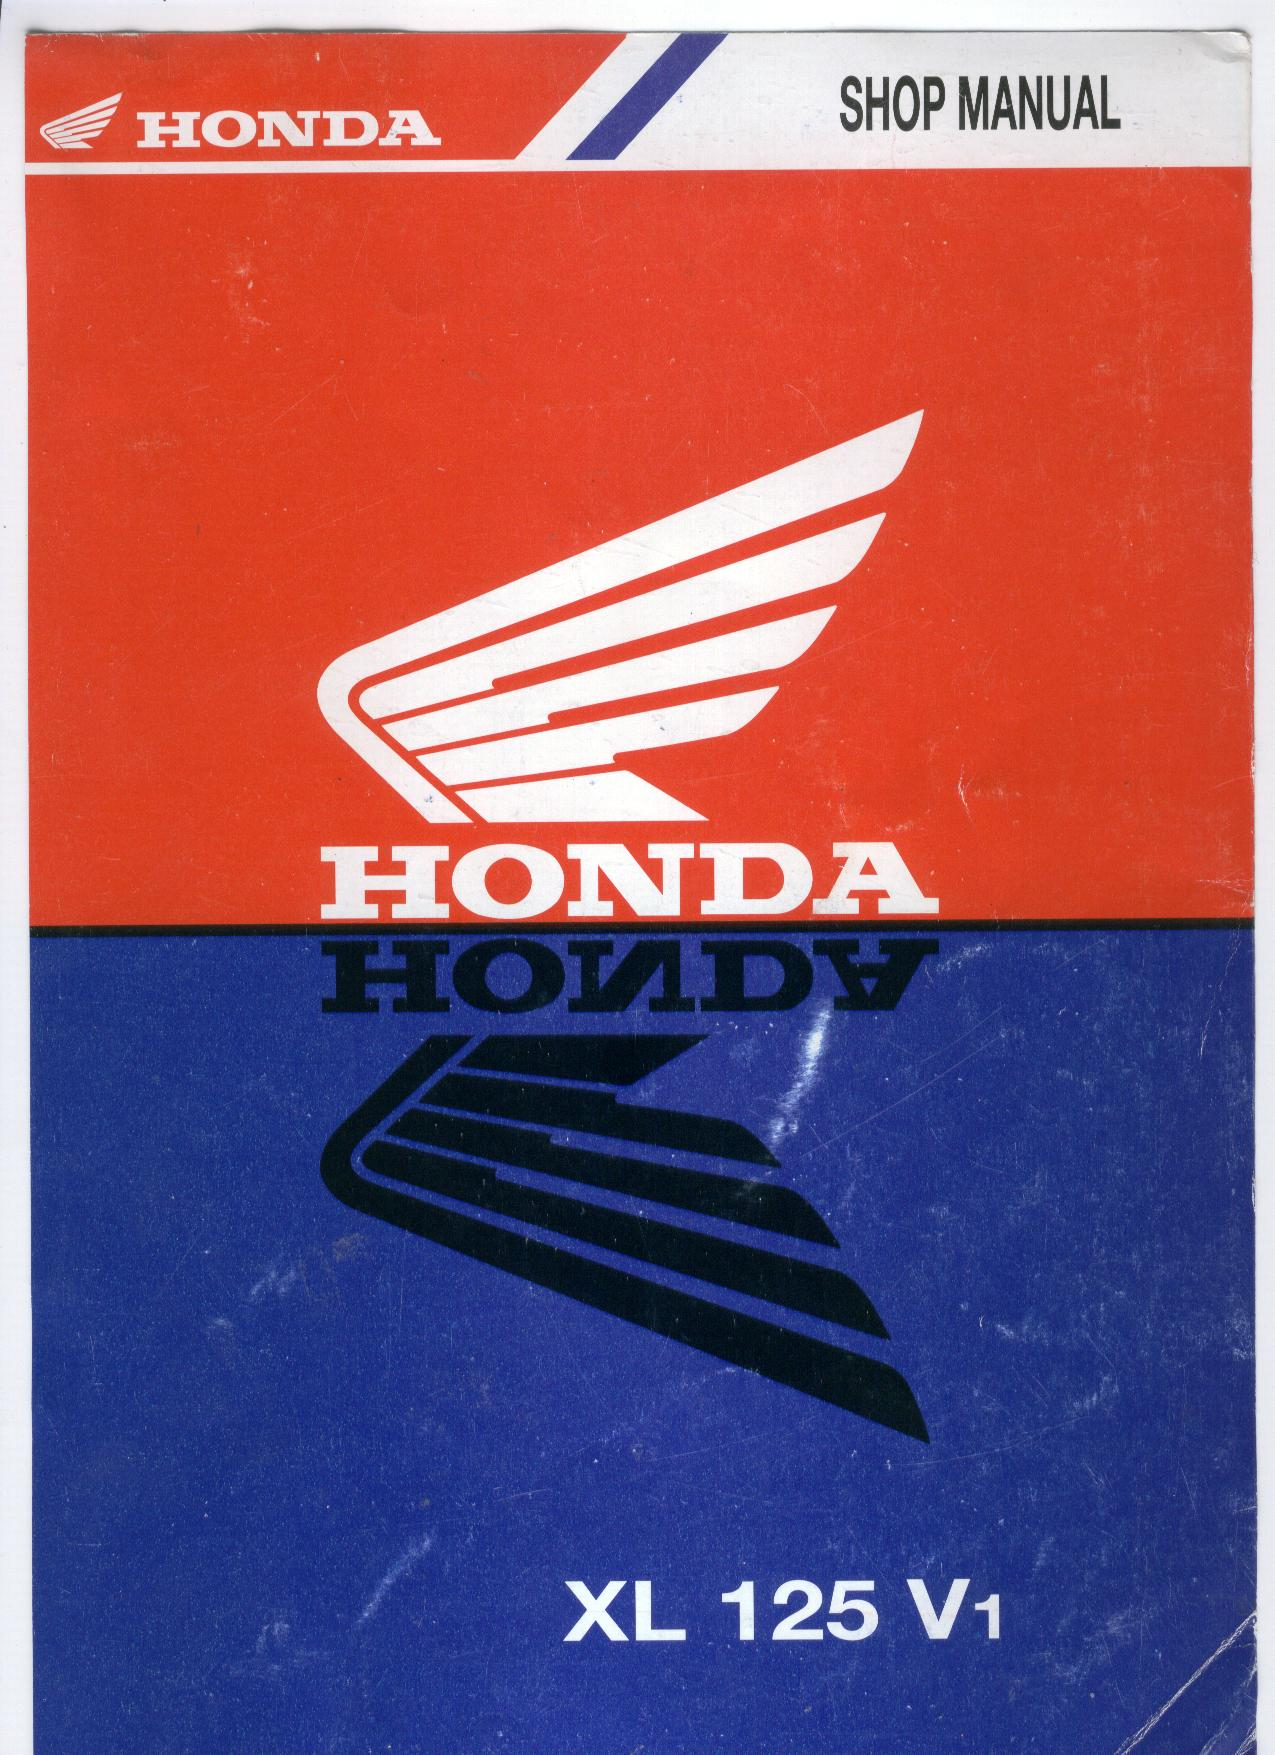 Workshop Manual for Honda XL125 (V1)